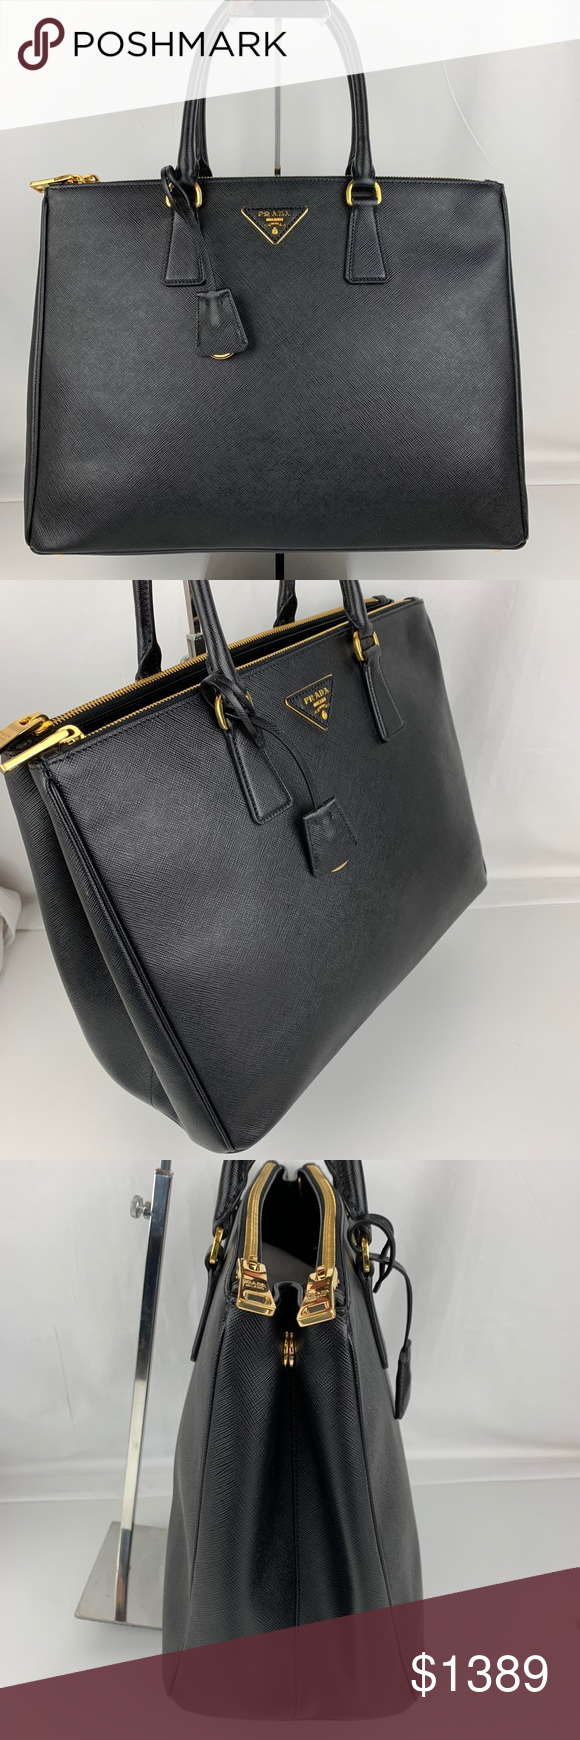 f57a1de6099b New Prada Italian Galleria Large Double Zip Tote Authentic Prada style  1BA786. New with Tags